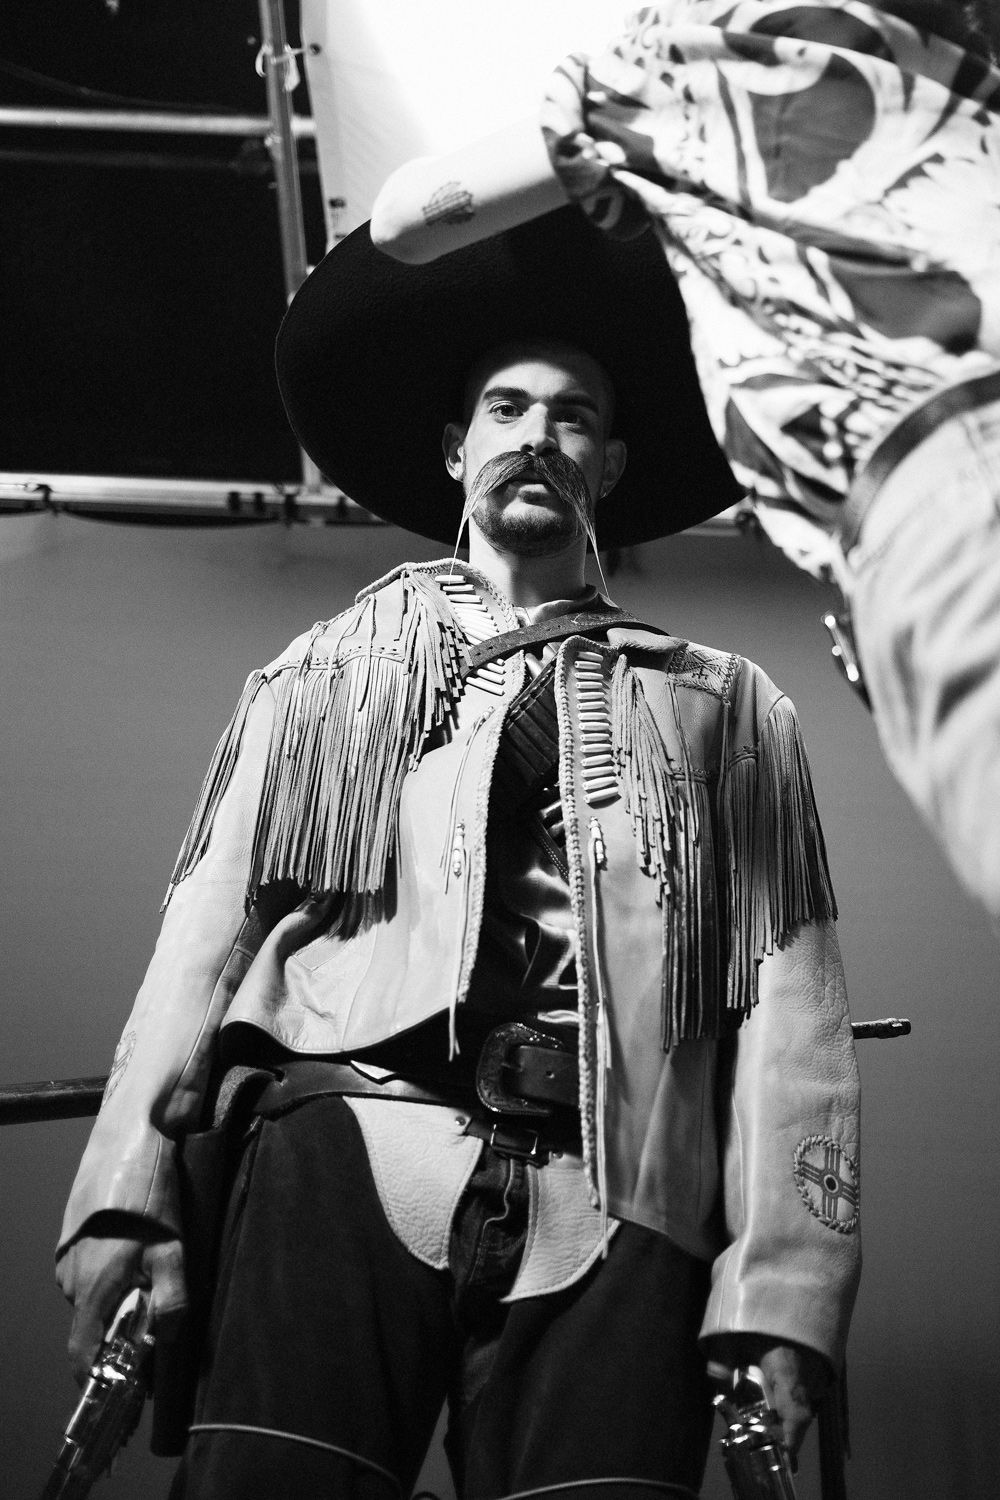 behind the scenes of rapper Koriass wearing mexican cowboy costume looking at camera on set of music video 5 à 7 filmed by Vincent Ruel-Cote from Les Gamins with 7ieme Ciel Records